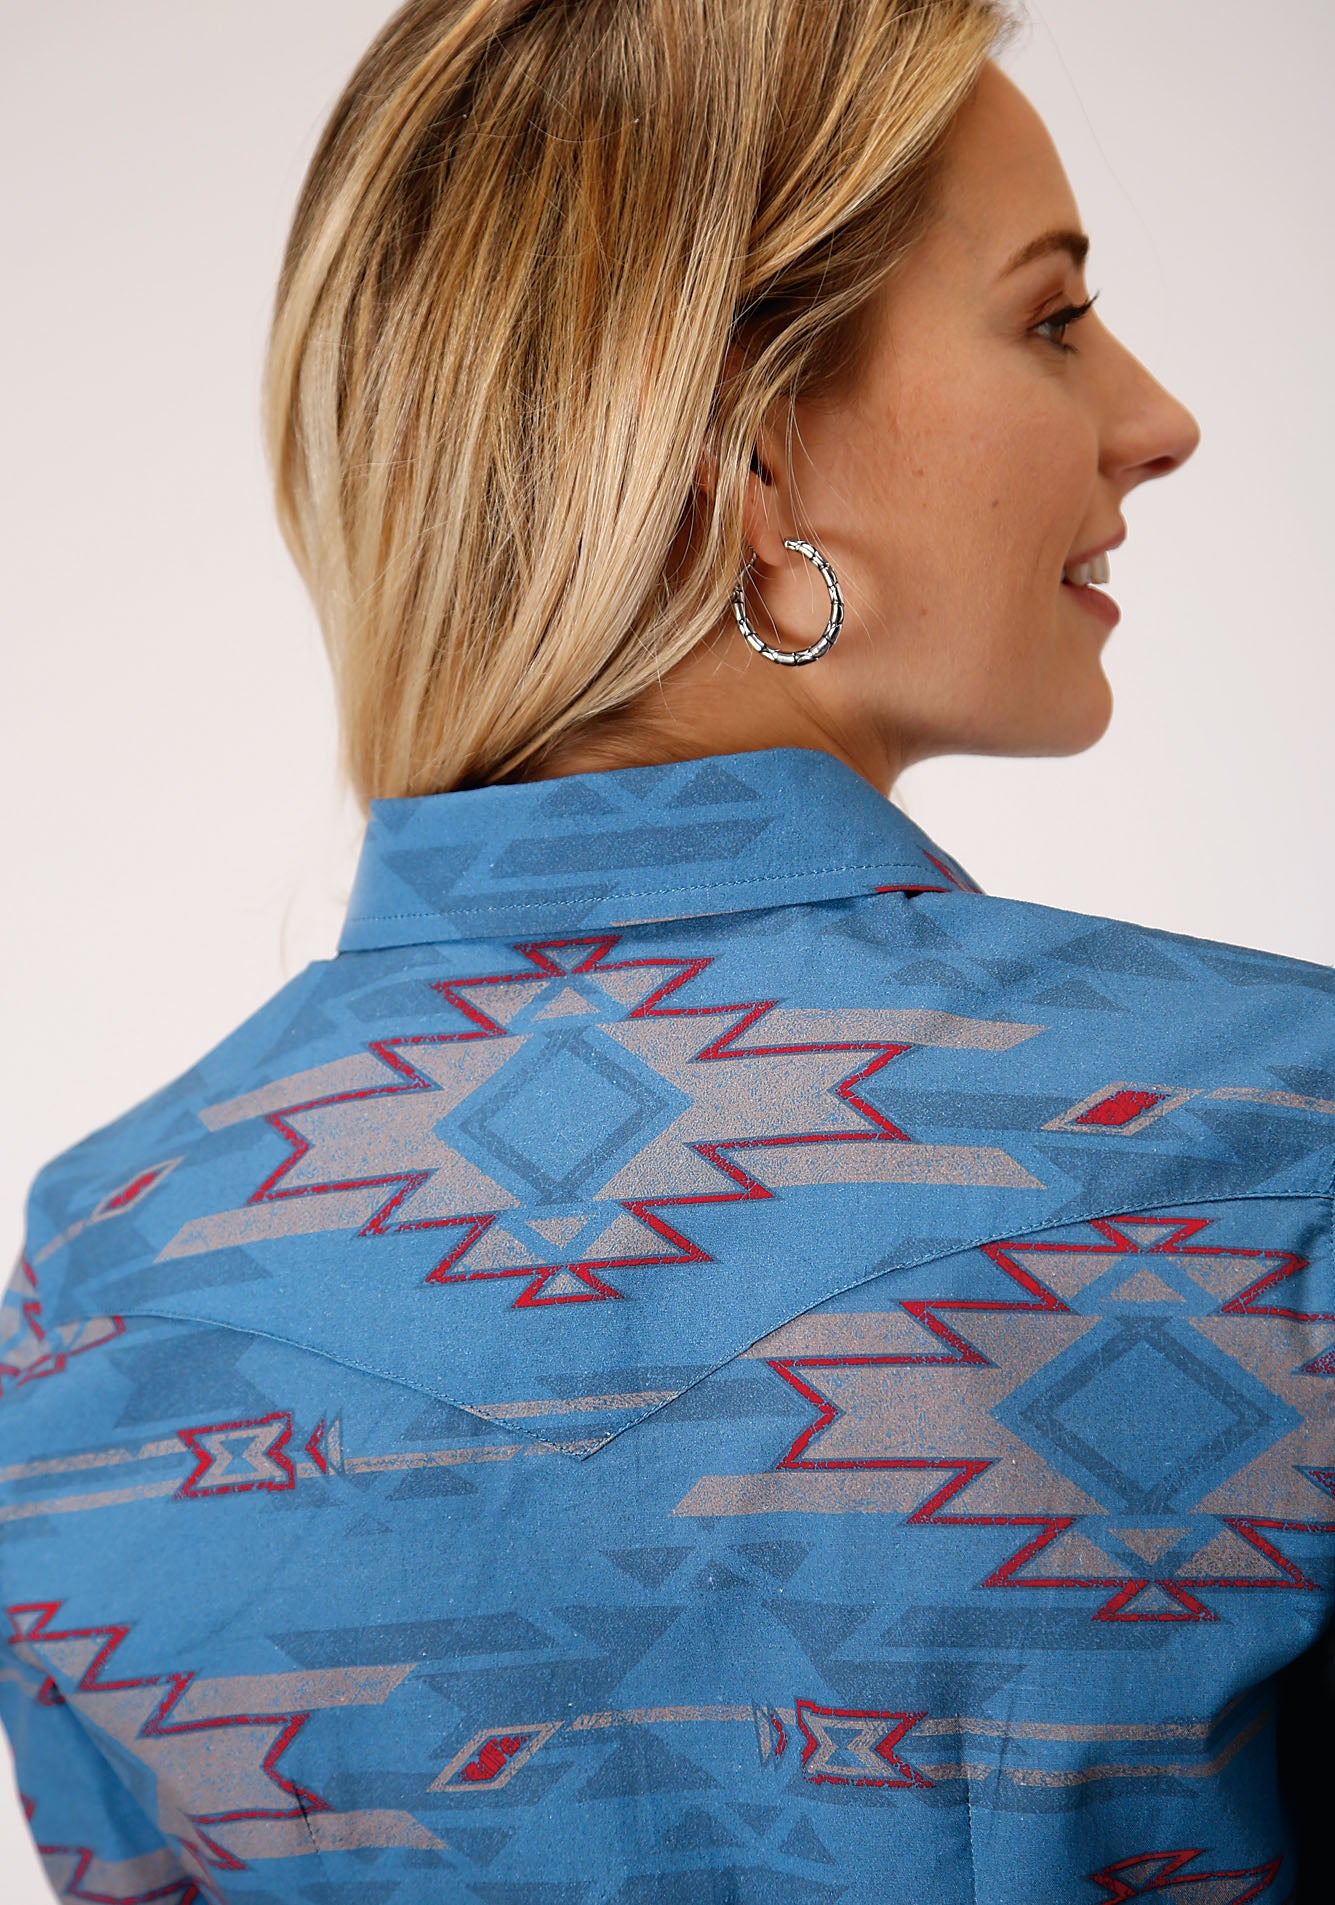 ROPER WOMENS BLUE 00077 SANDSTORM AZTEC WEST MADE COLLECTION LONG SLEEVE